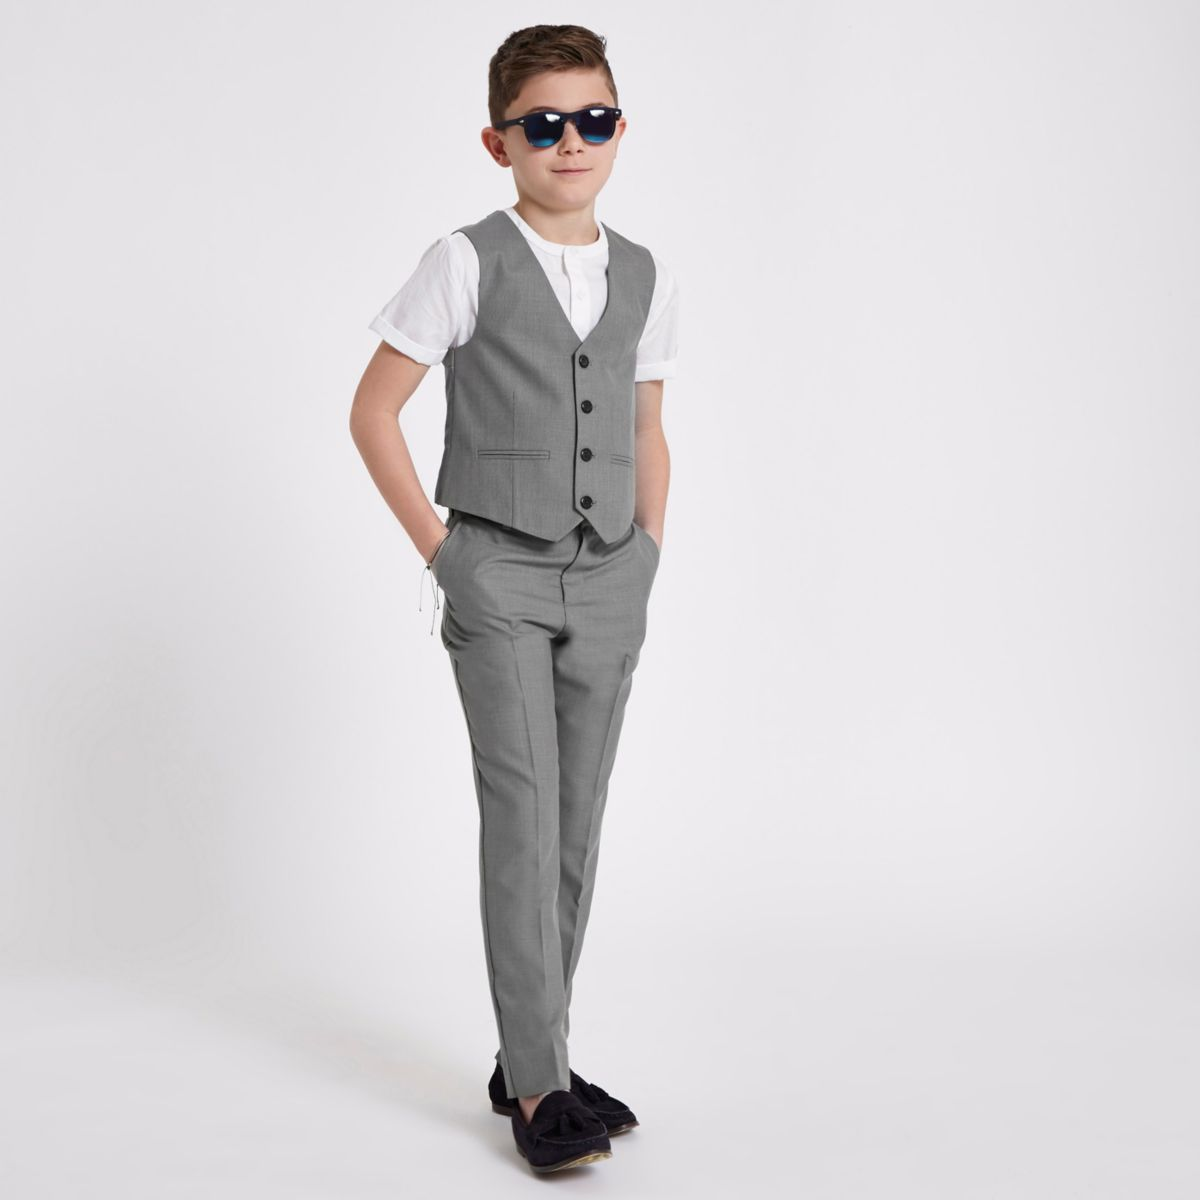 Boys grey suit vest